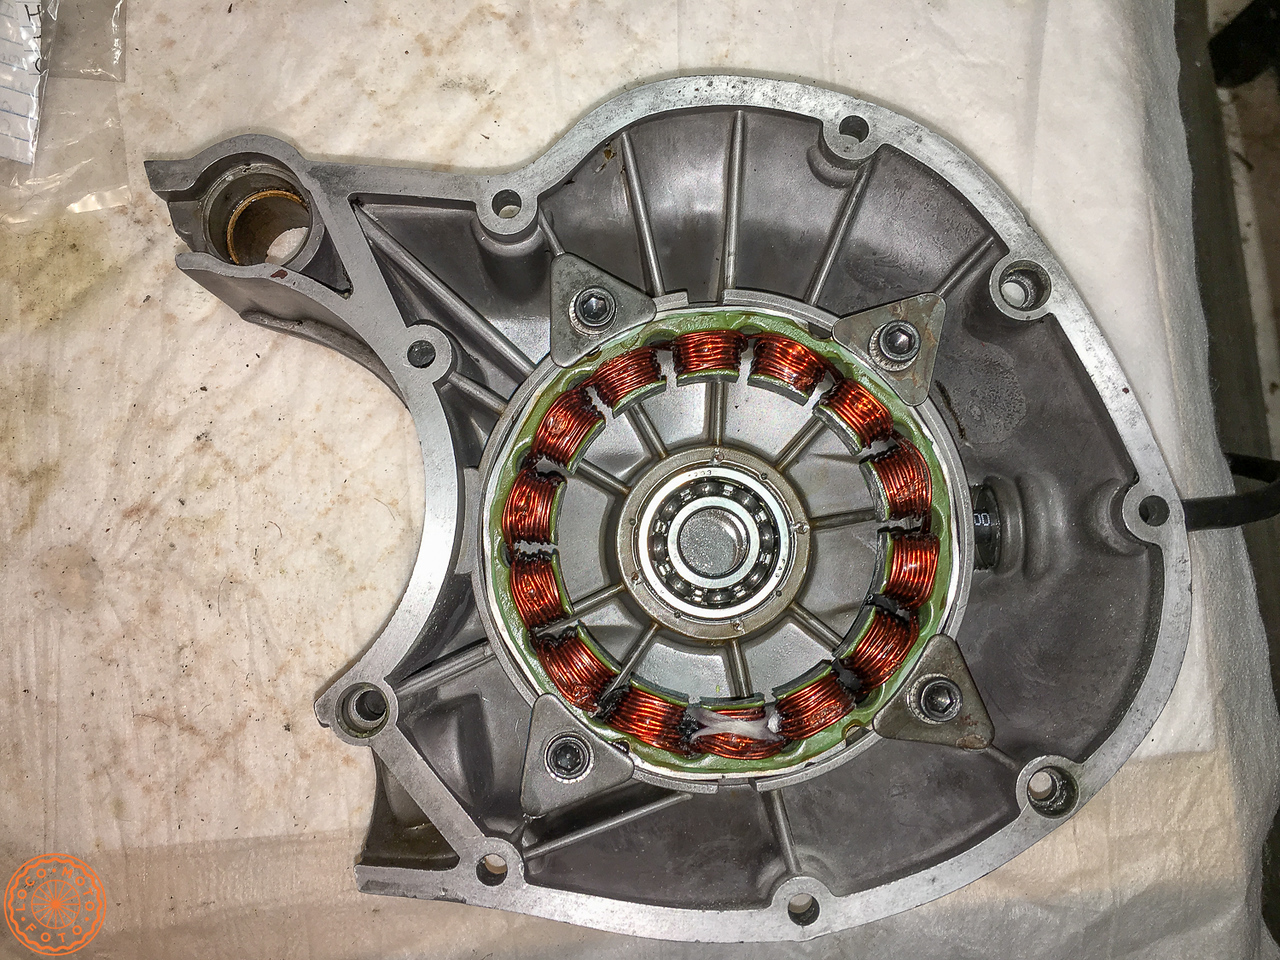 Rewound stator back in the case